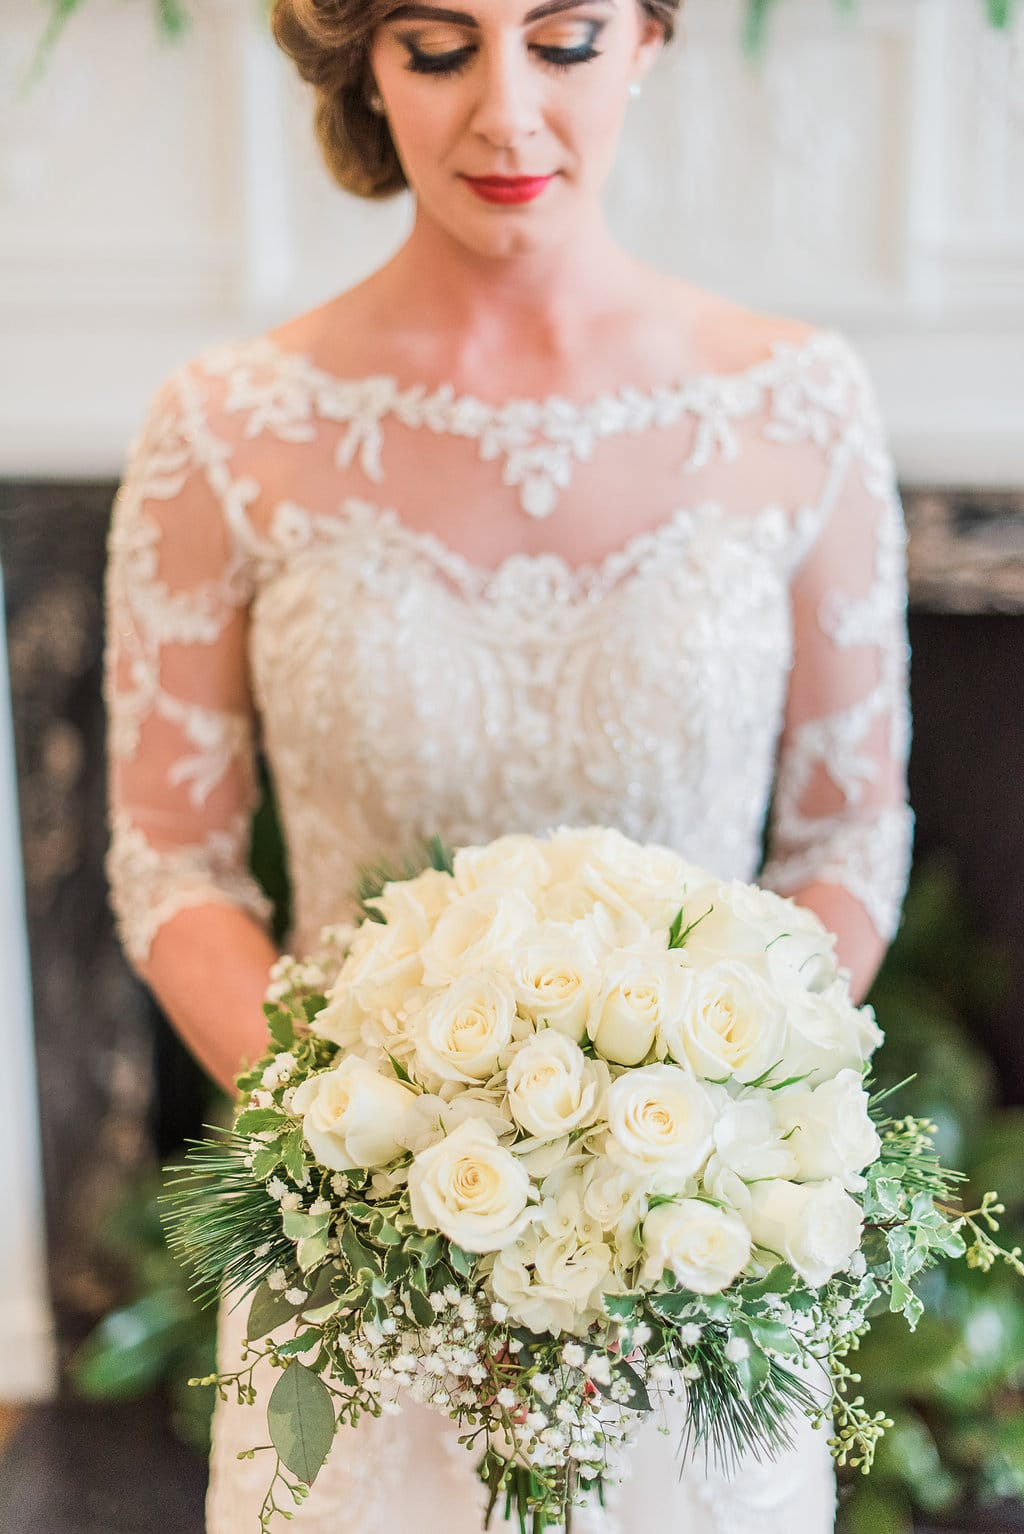 Winter-Wonderland Wedding Infused with Southern Charm: Maggie Bride wearing Verina by Maggie Sottero.